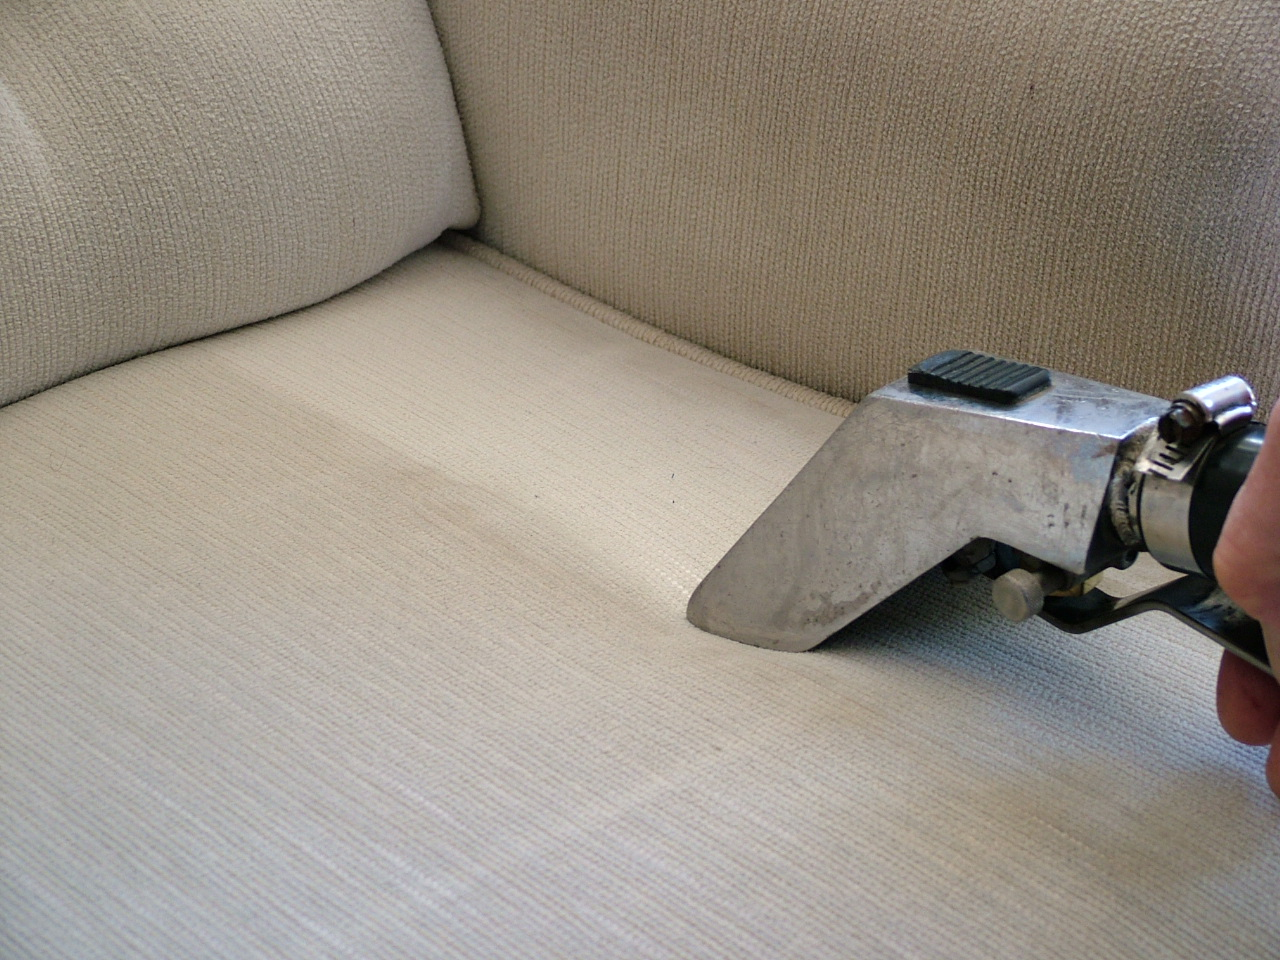 Upholstery Steam Carpet Cleaning Long Island Upholstery Cleaning Rug Cleaning Stain Removal